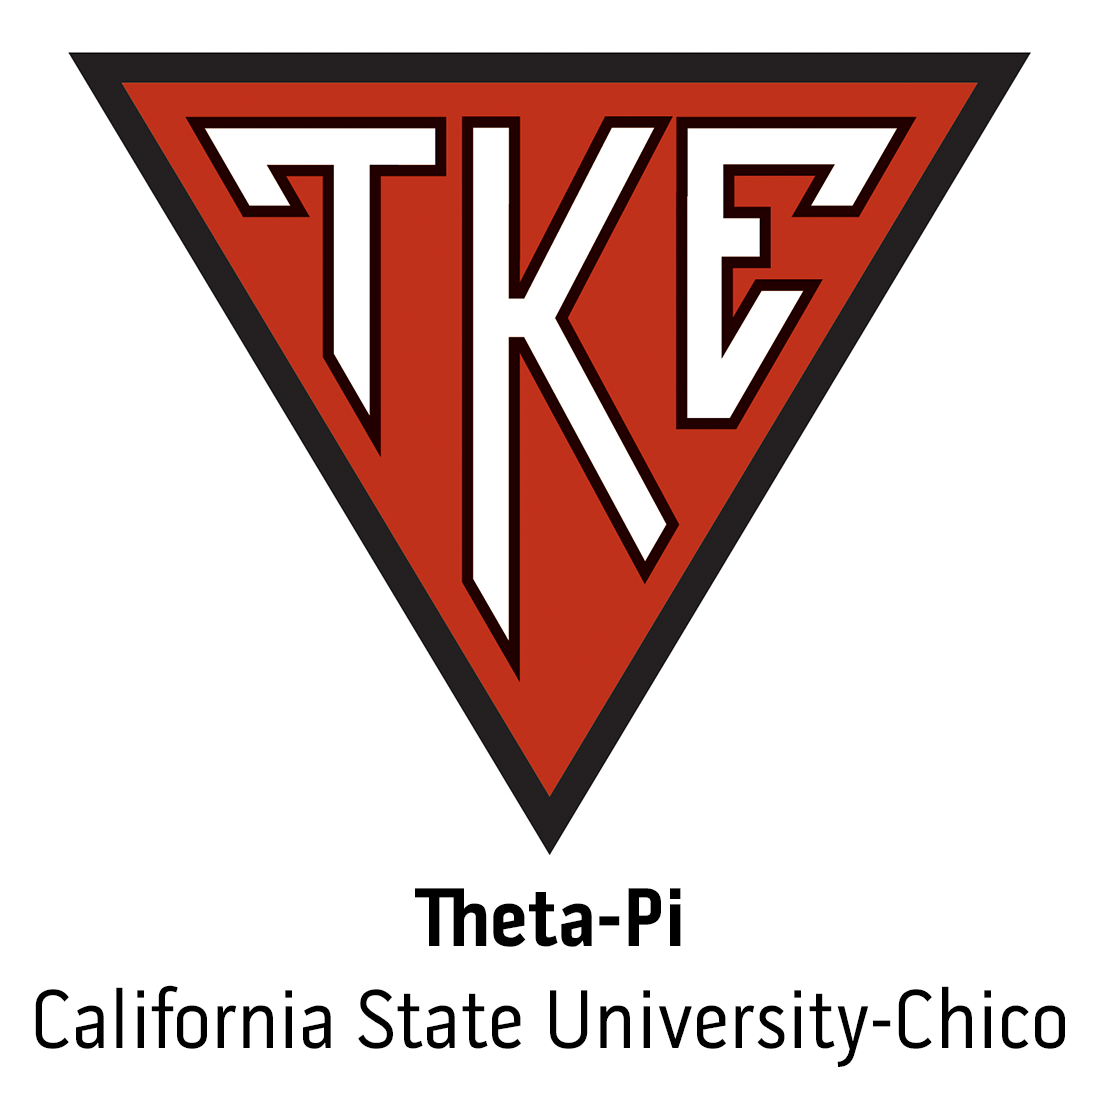 Theta-Pi Colony Colony at California State University, Chico